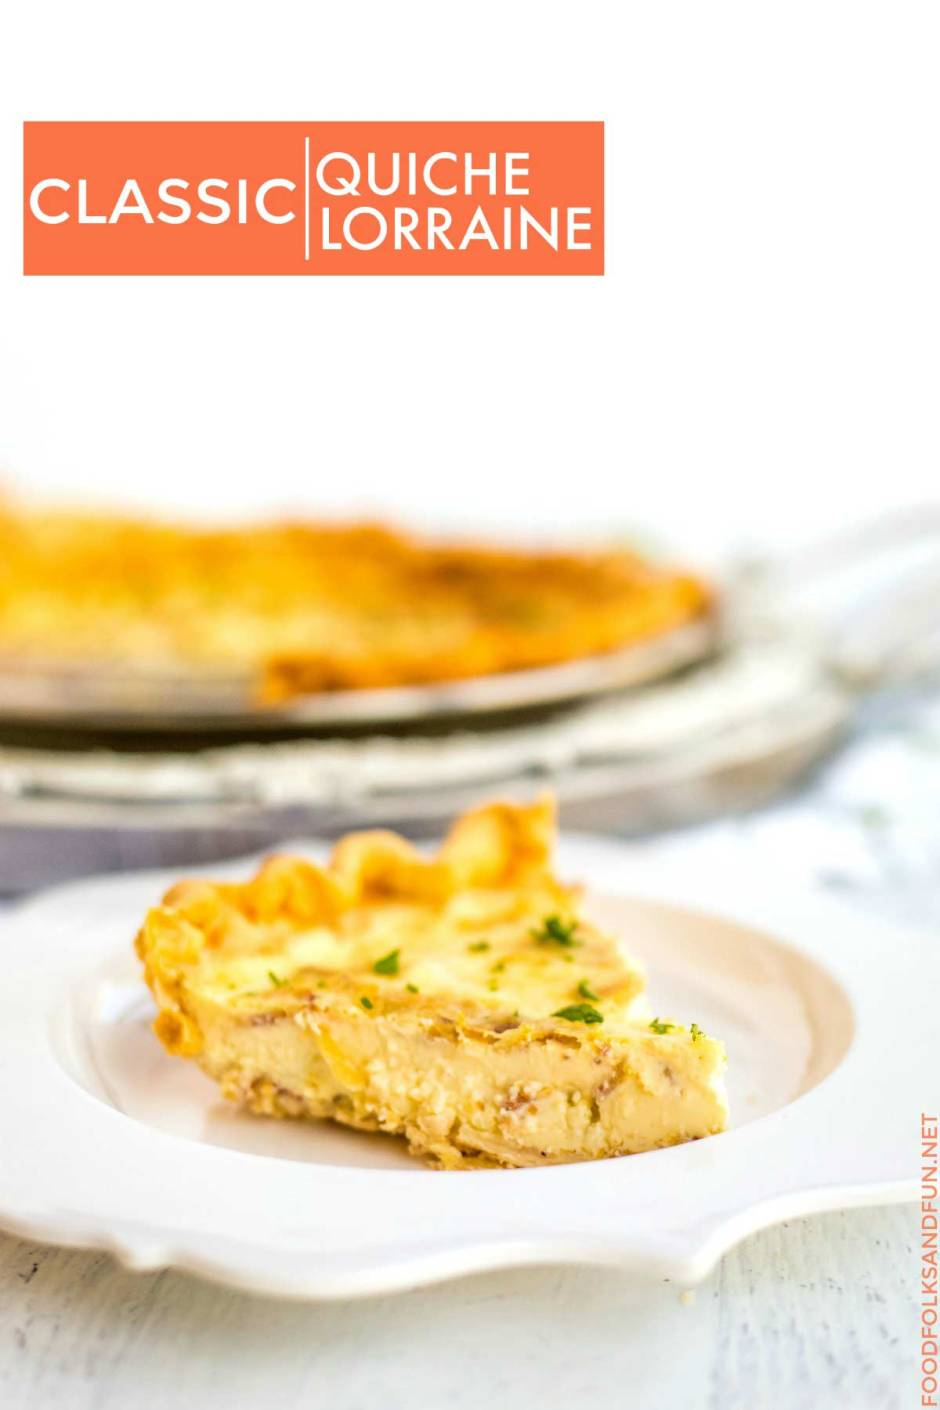 Quiche picture with text overlay for Pinterest.